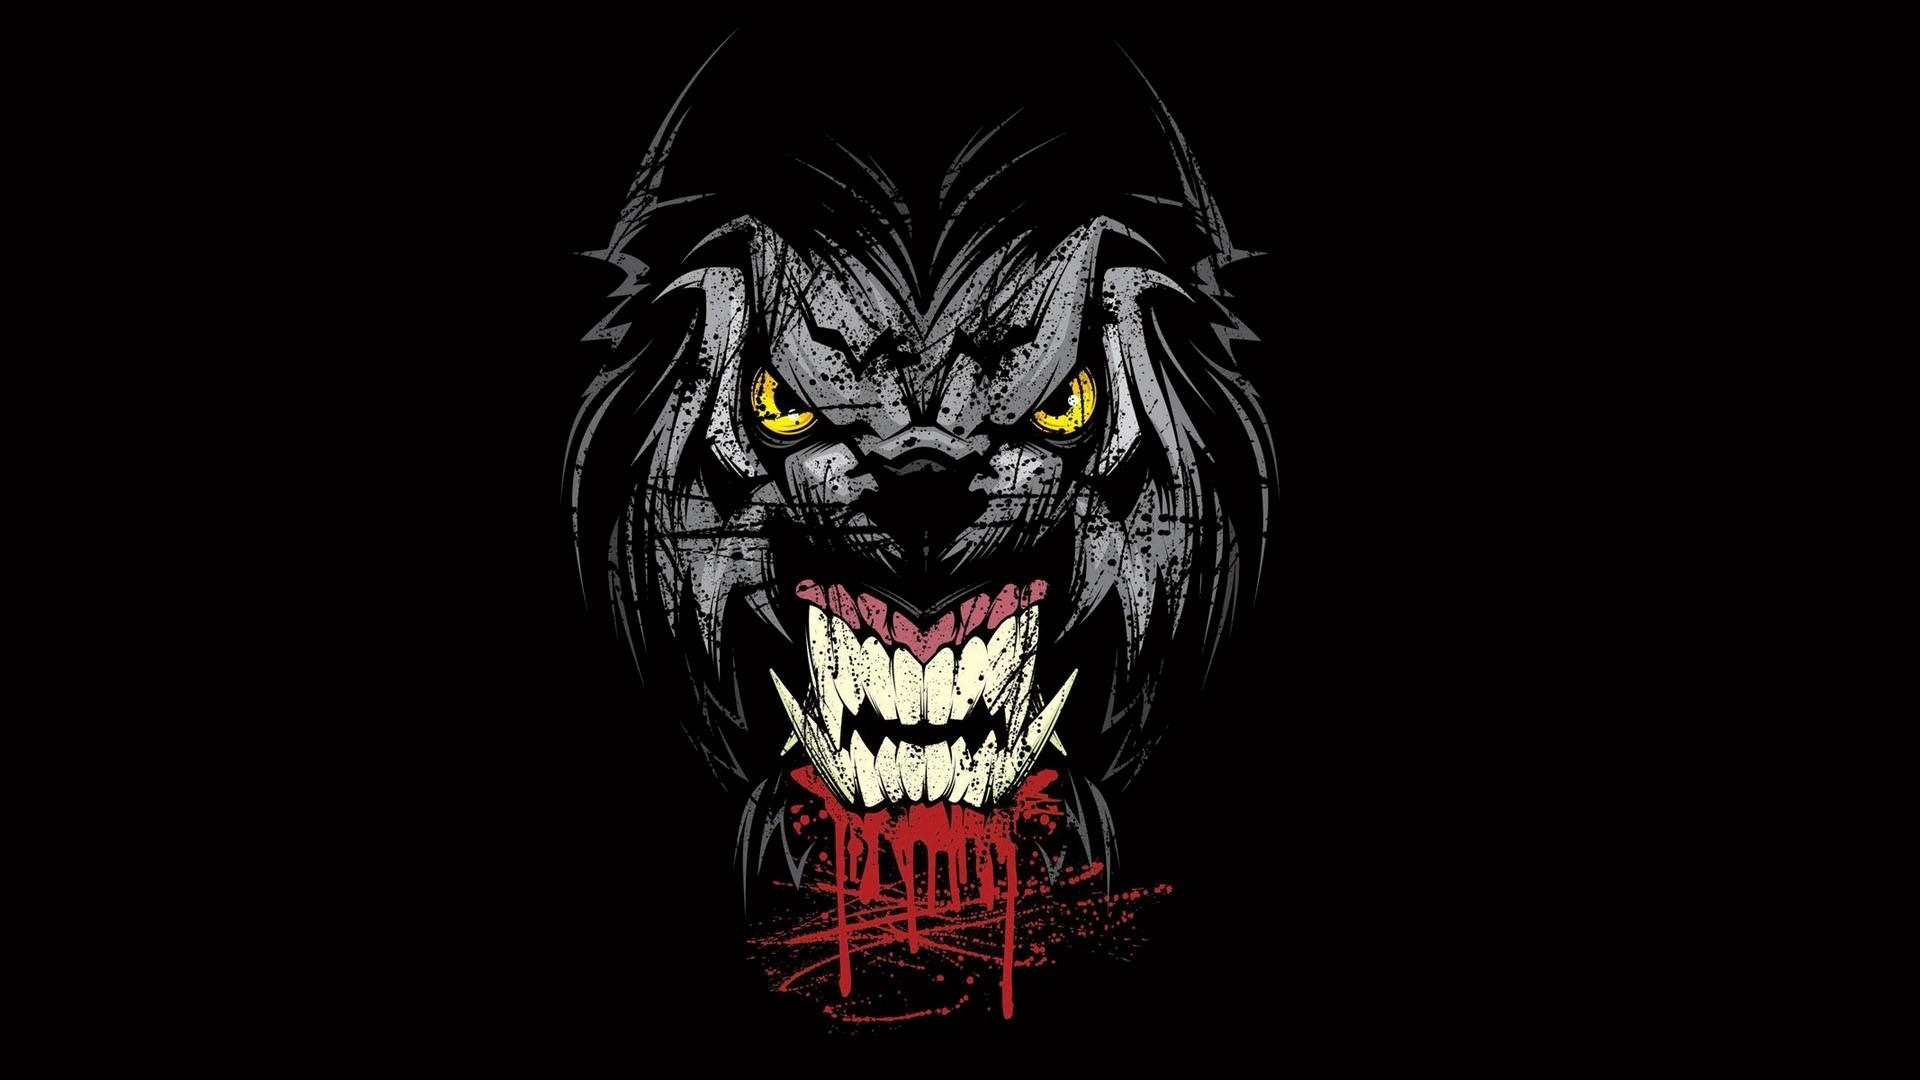 Creepy werewolf wallpaper